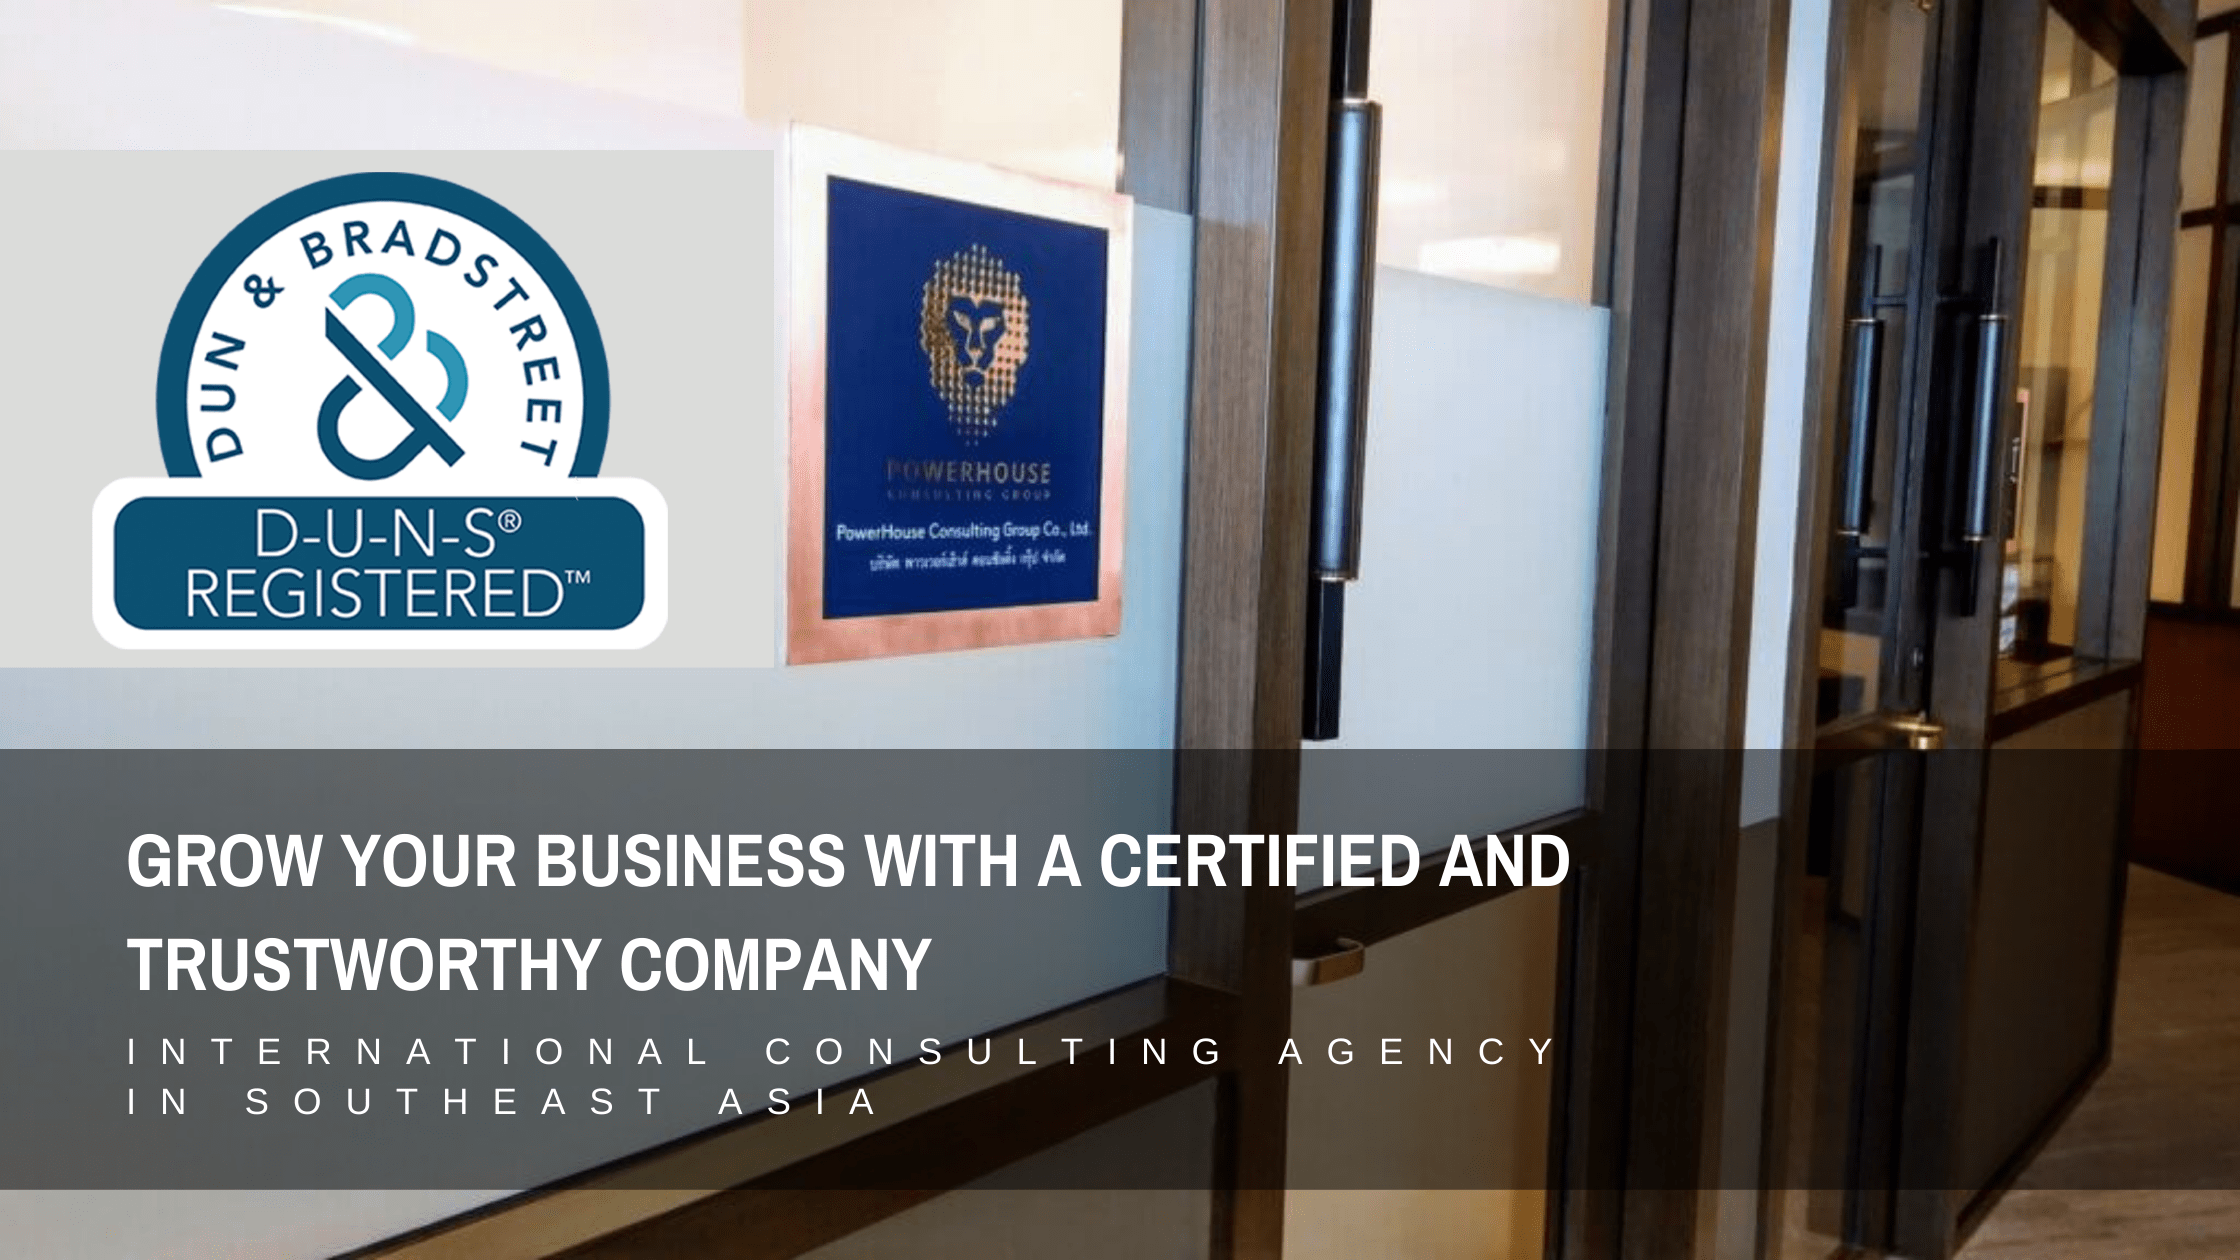 Grow Your Business with a Certified and Trustworthy